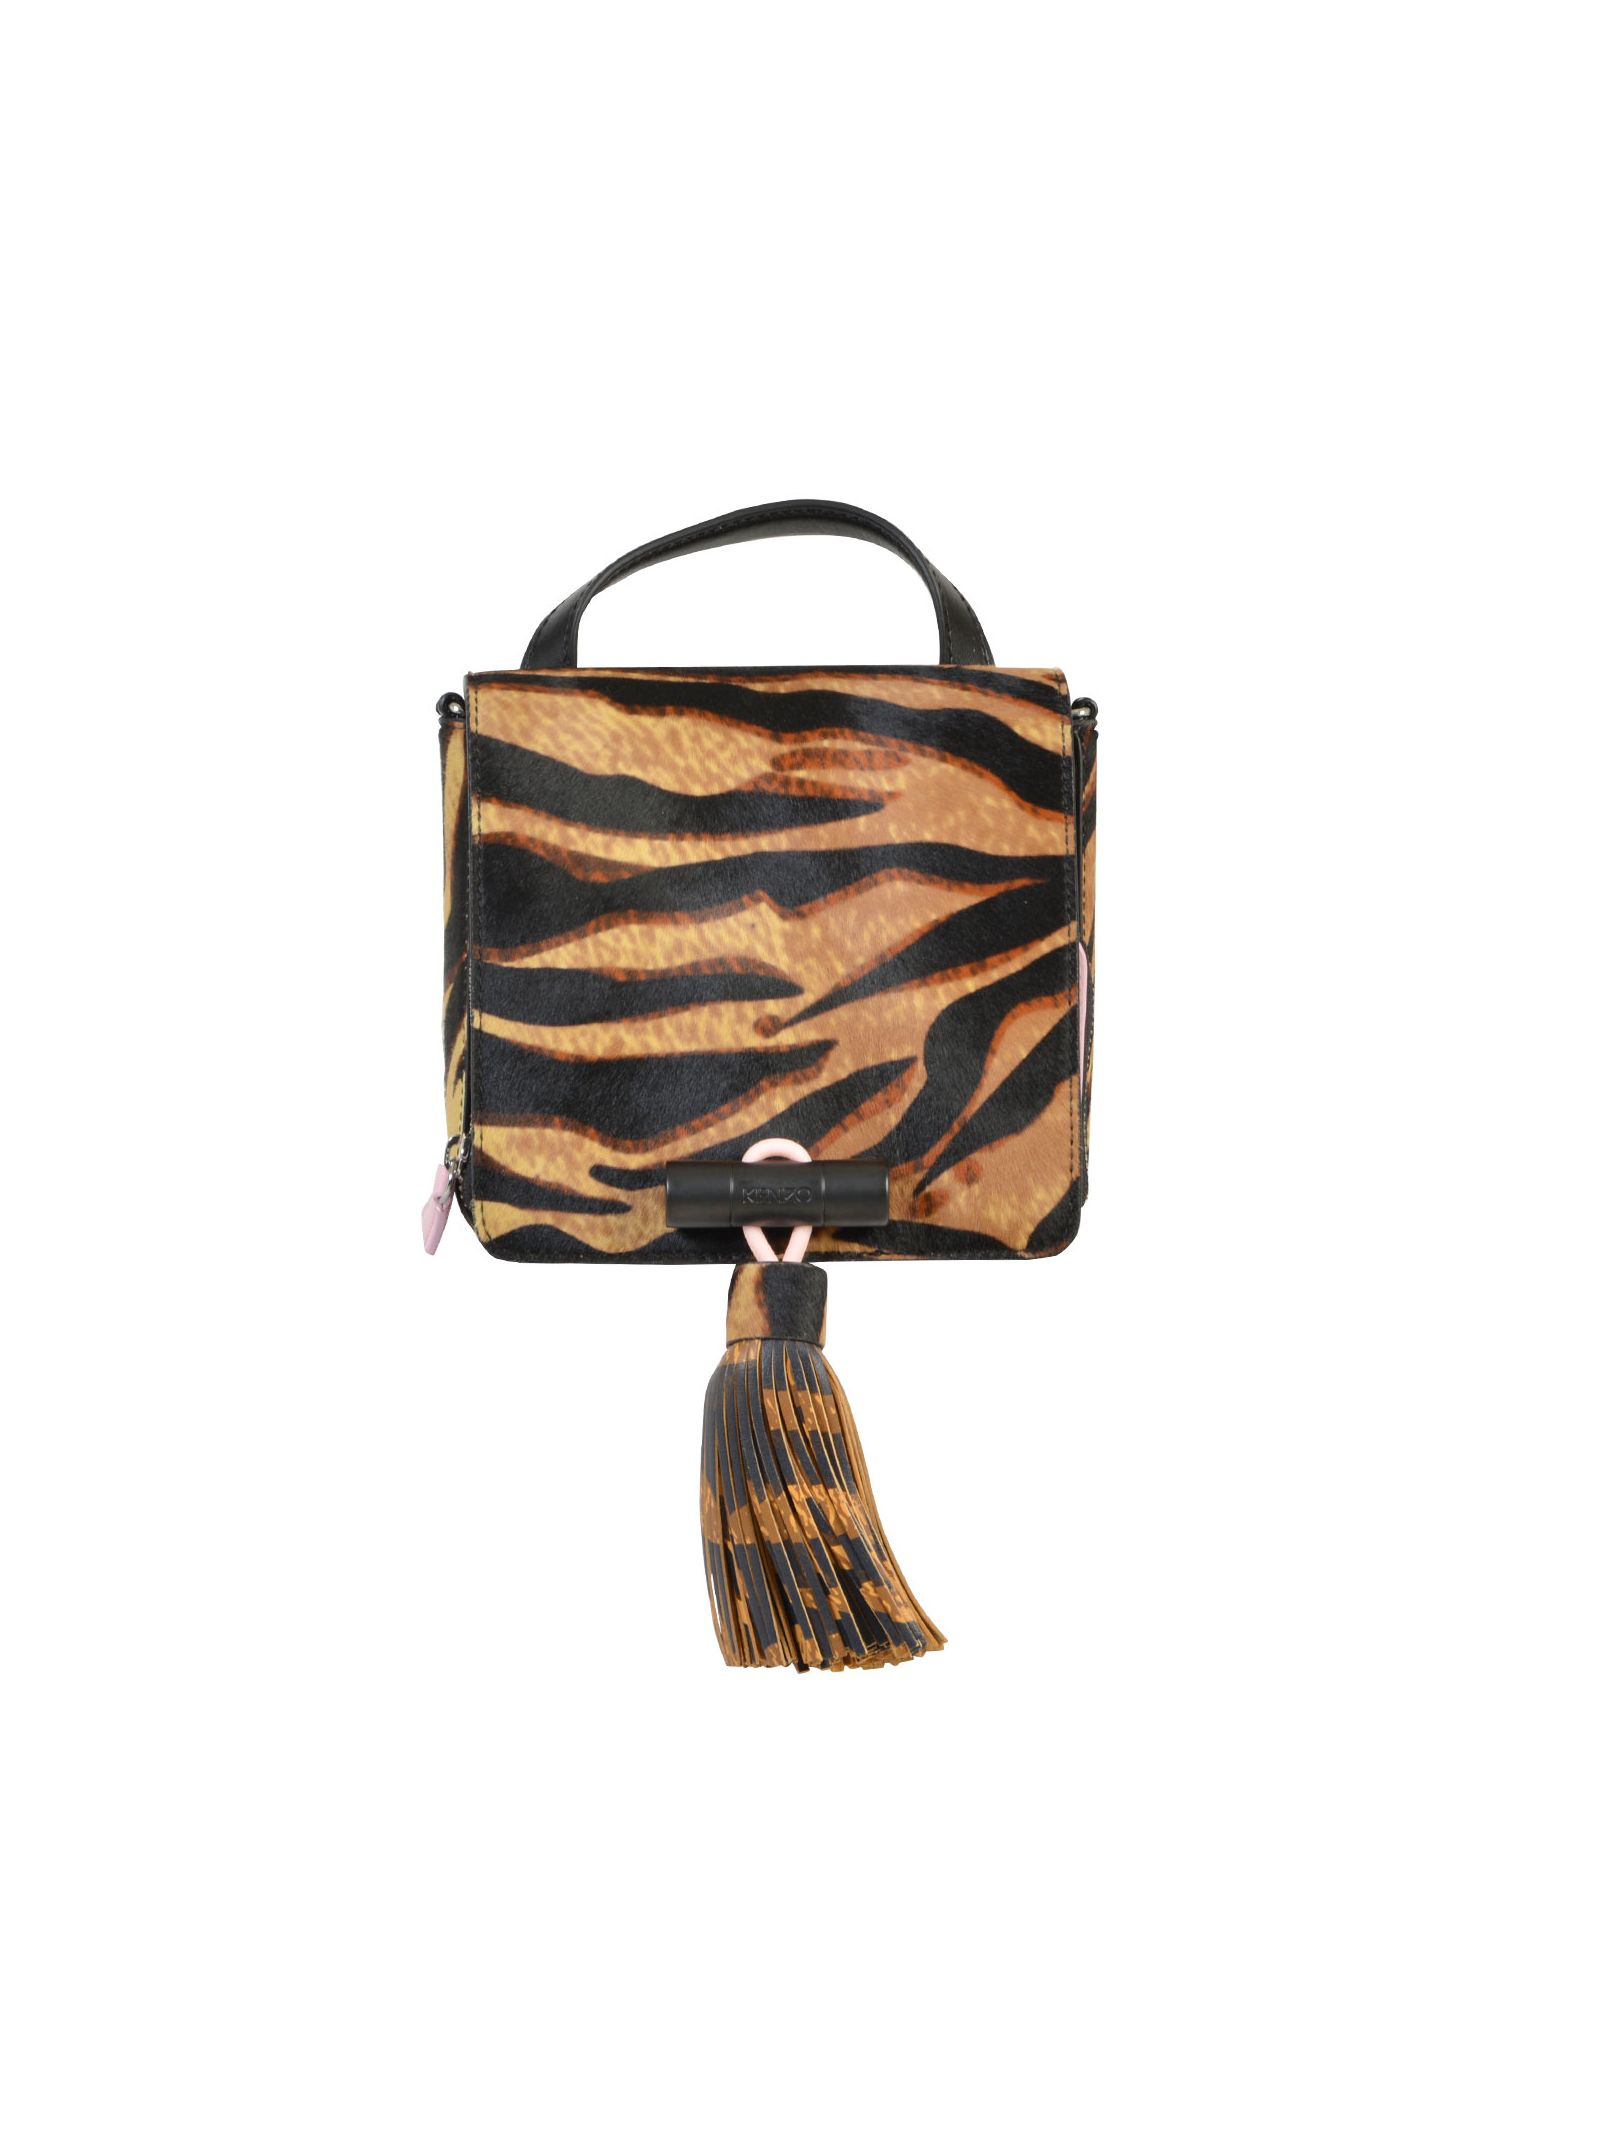 Sailor bag in calfskin leather - animalier pattern - one handle - detachable strap - snap button fastening - ziped pocket - measurements: 18x16x8 cm, strap 52 cm